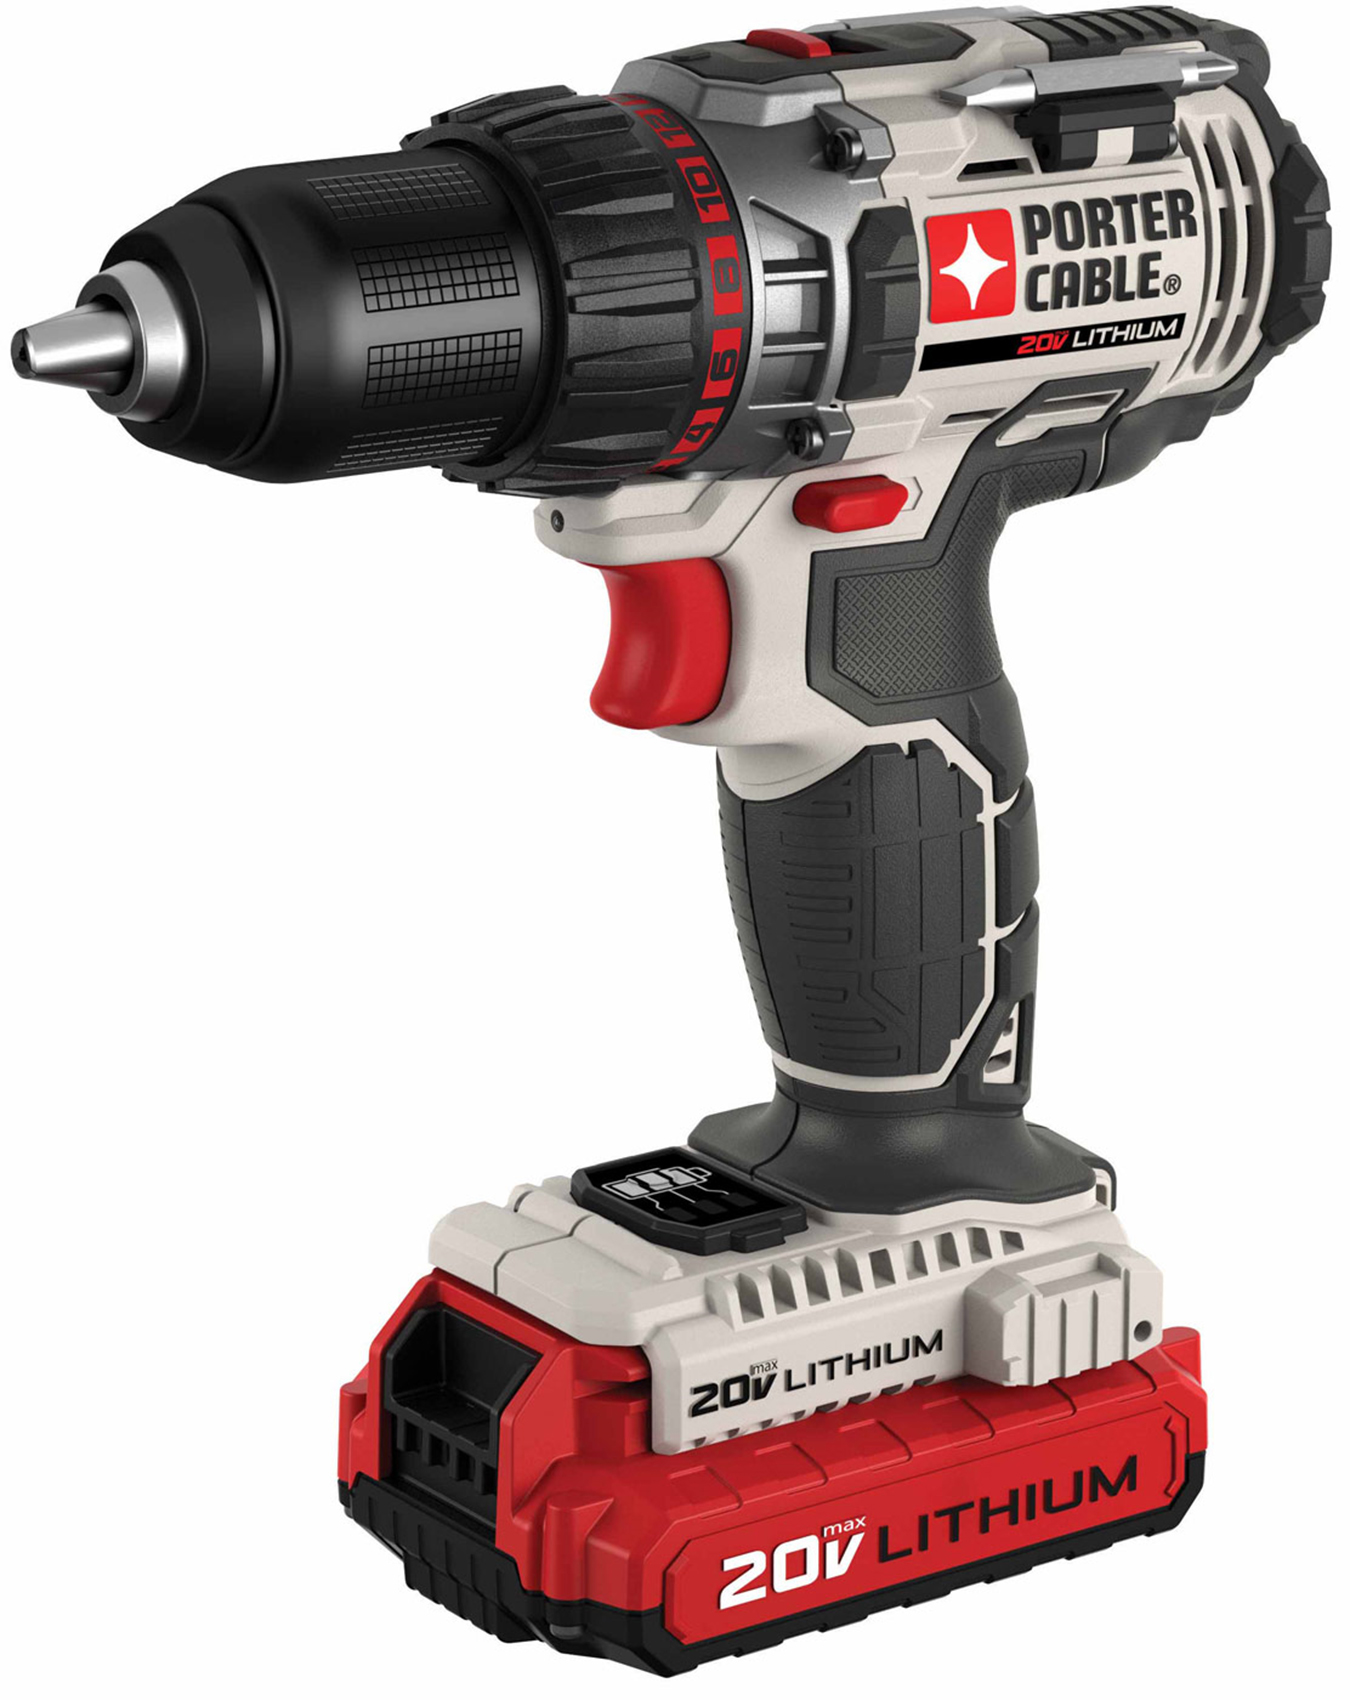 """Porter Cable PCCK600LB 20V Max 1 2"""" Lithium Ion Cordless Drill Driver Kit, with 2... by Black & Decker"""